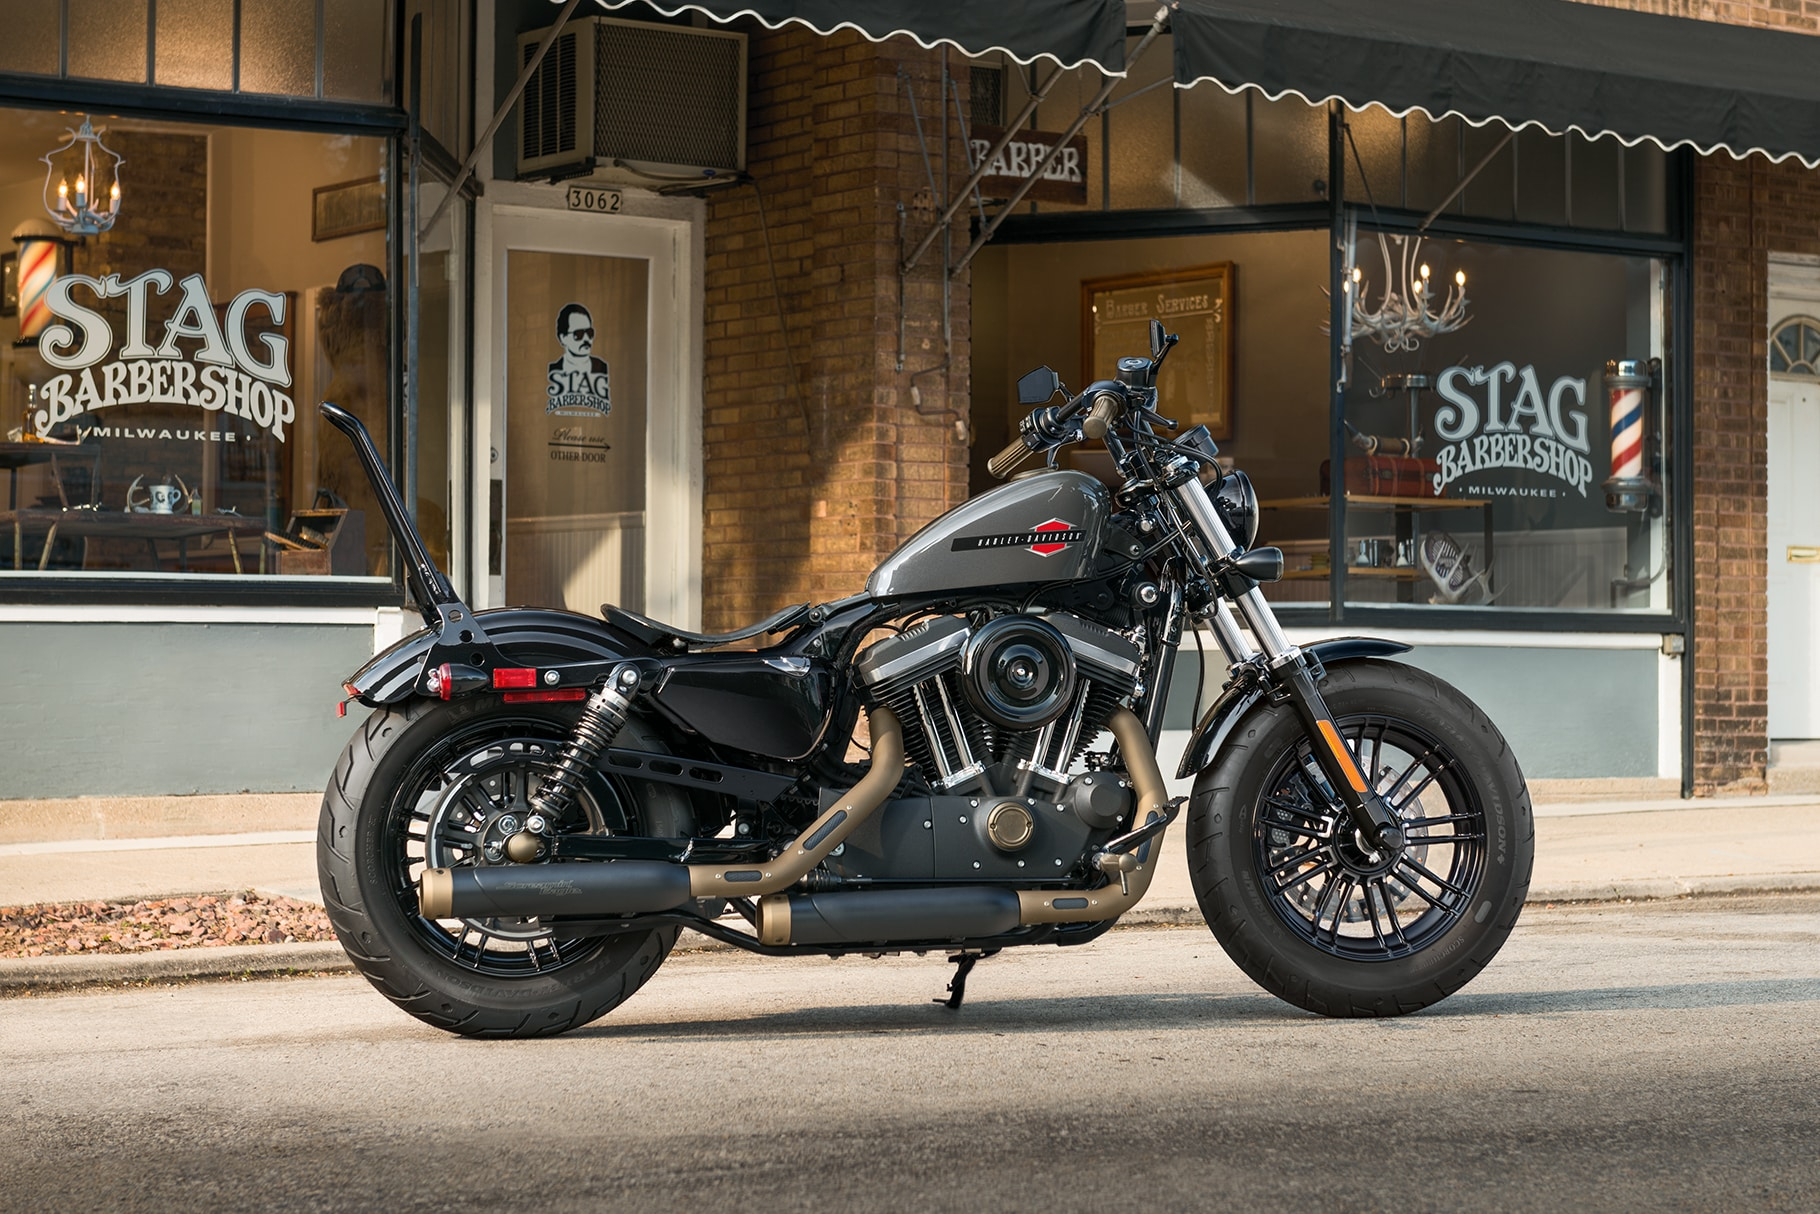 2019 H-D Sportster motorcycle Parked in Front of Stag Barber Shop